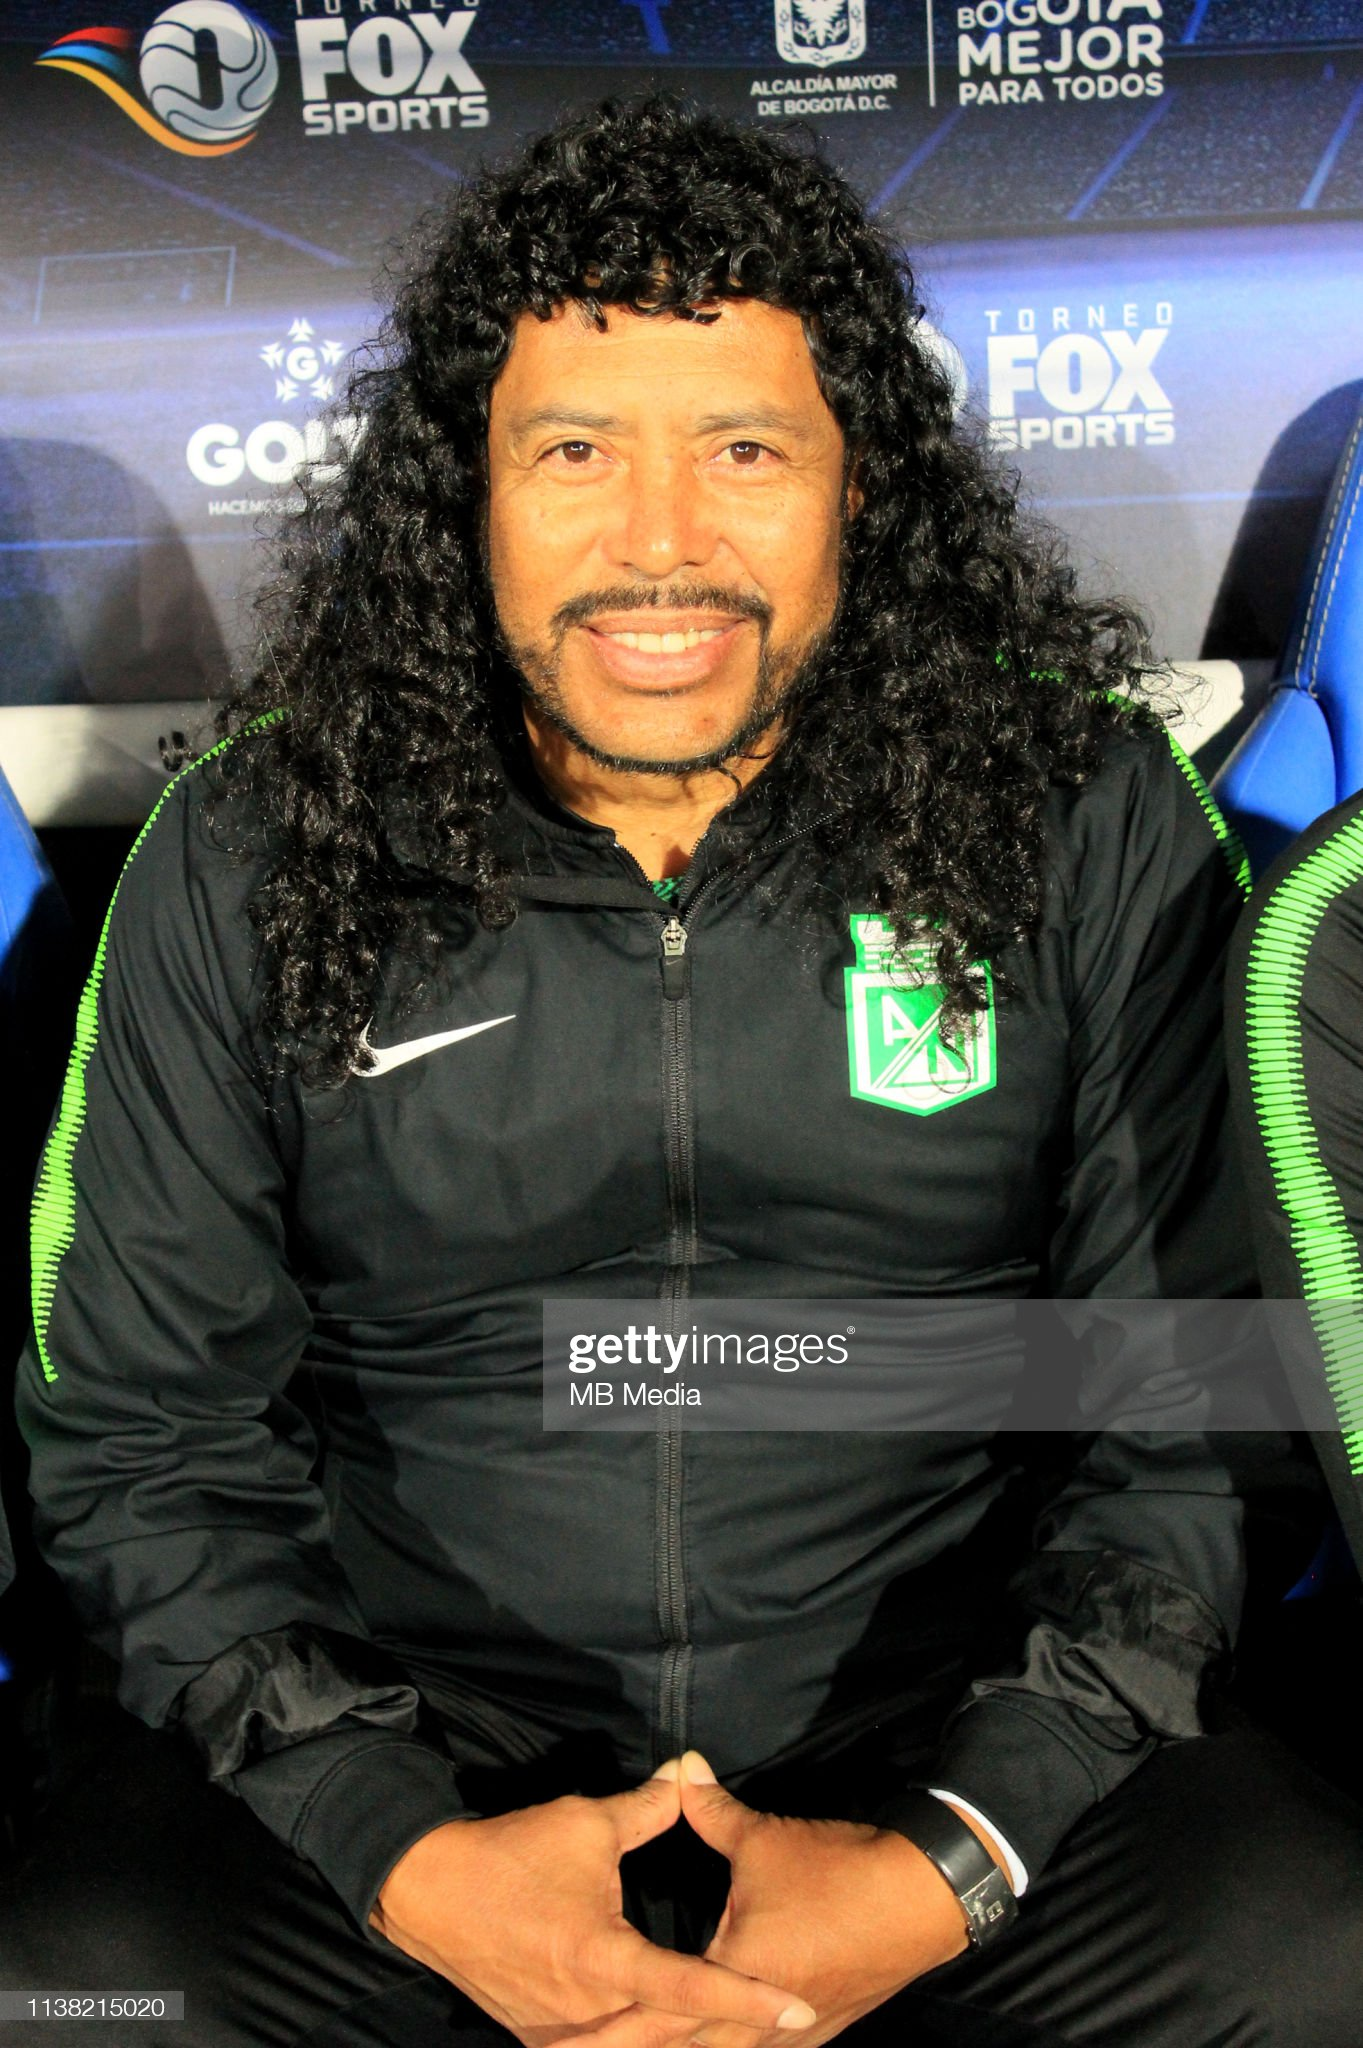 https://media.gettyimages.com/photos/colombian-football-league-primera-a-nliga-aguila-opening-tournament-picture-id1138215020?s=2048x2048